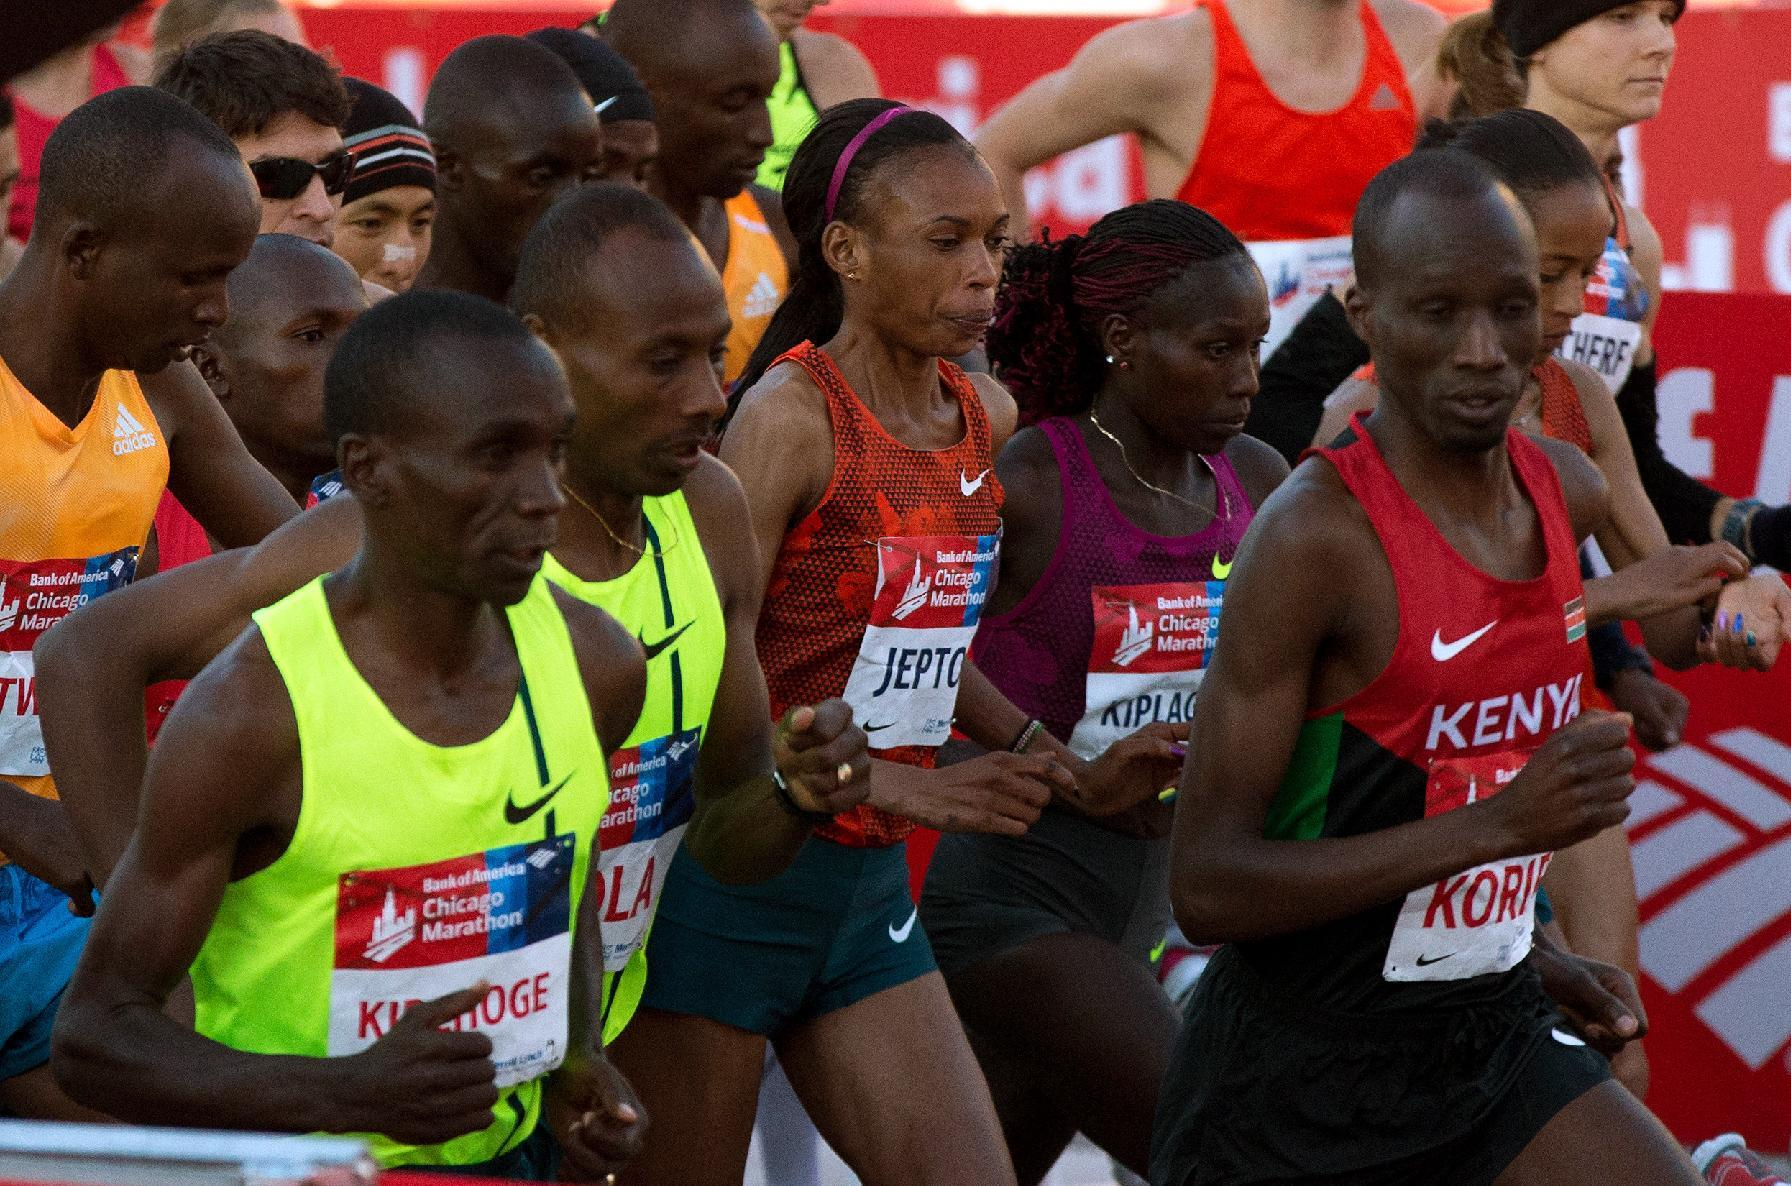 3-time Boston Marathon champ Jeptoo gets 2-year doping ban